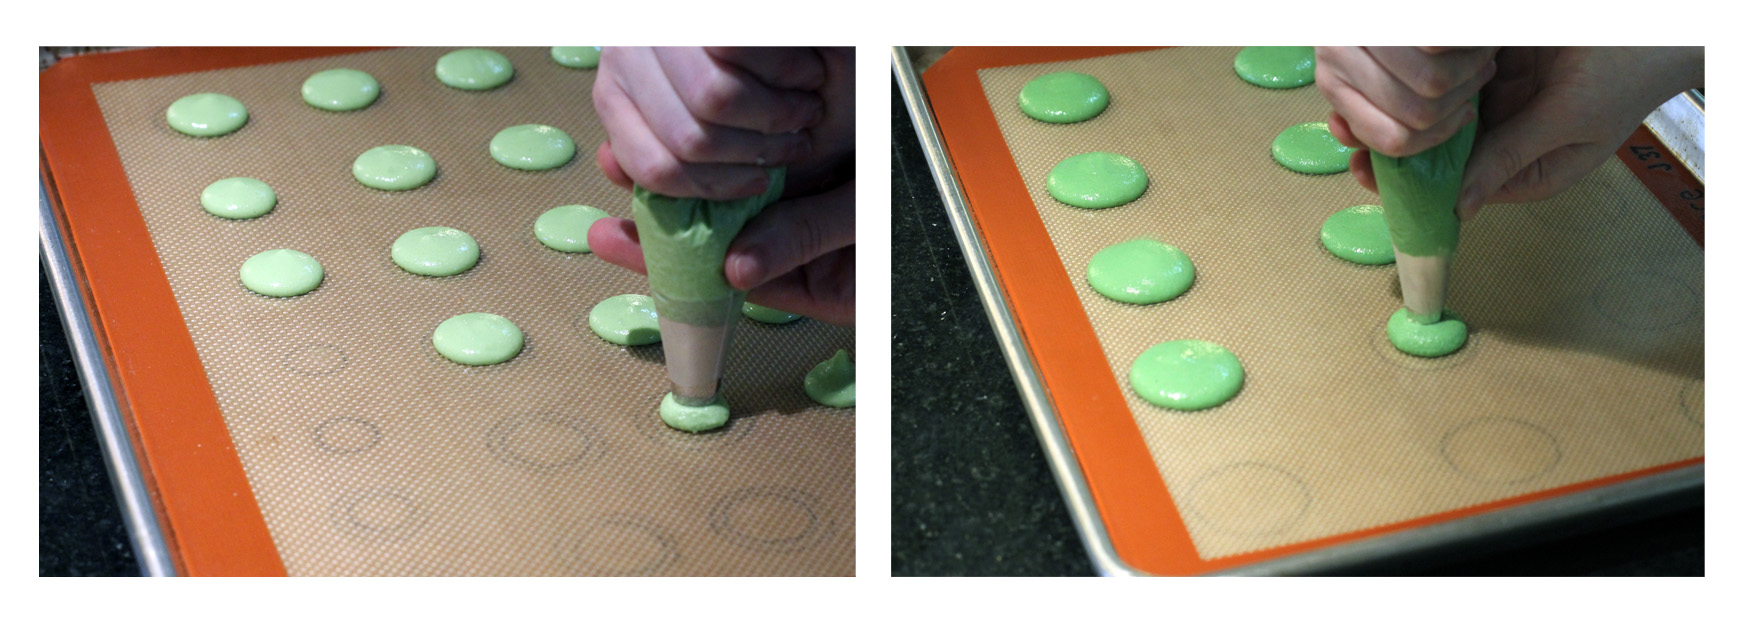 Step 1: Pipe french macarons in two different colors and three different sizes.